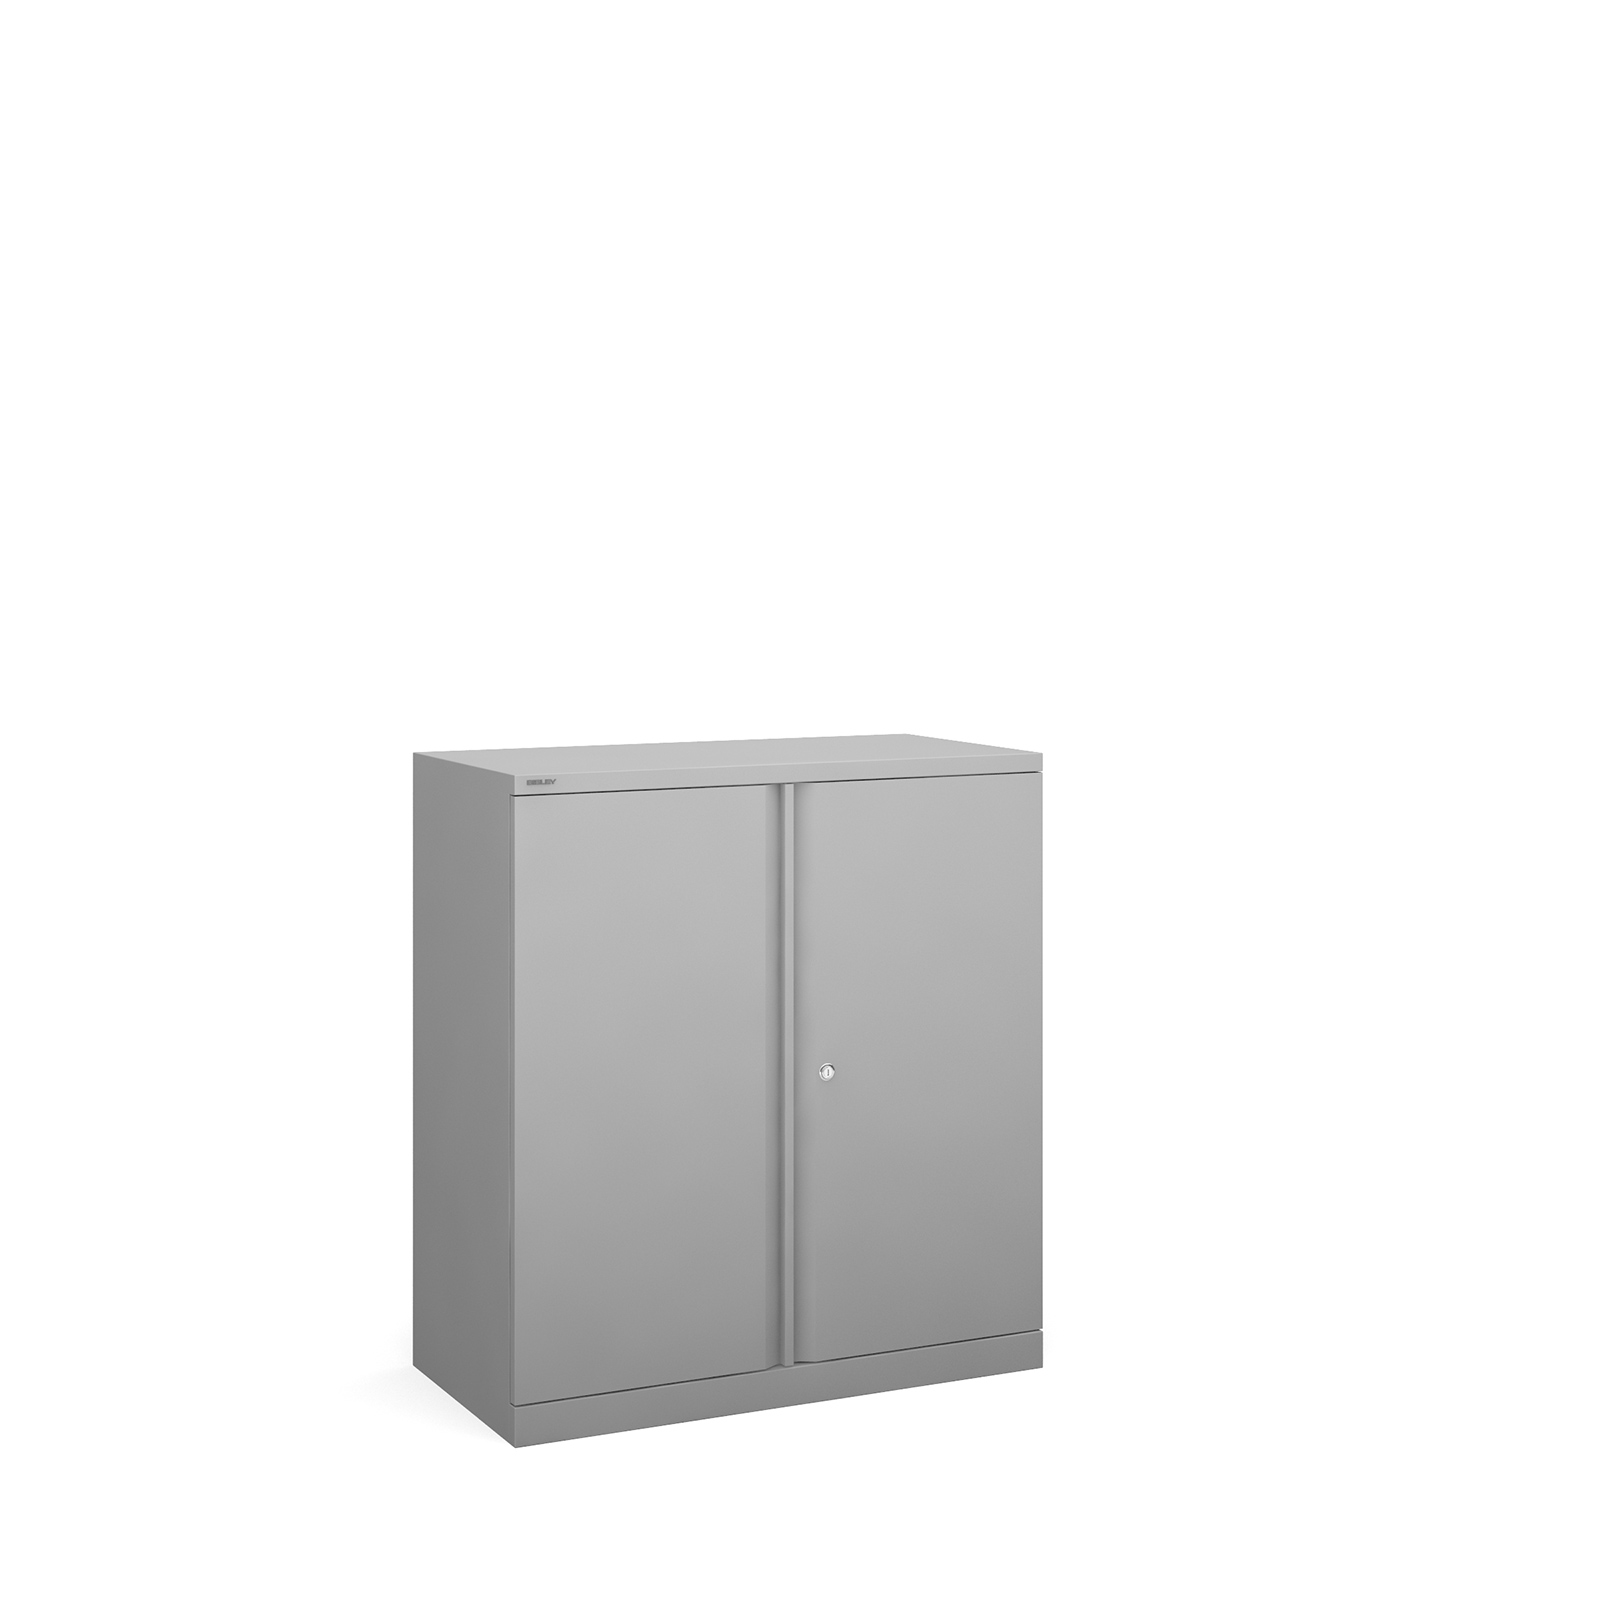 Bisley systems storage low cupboard 1000mm high - silver